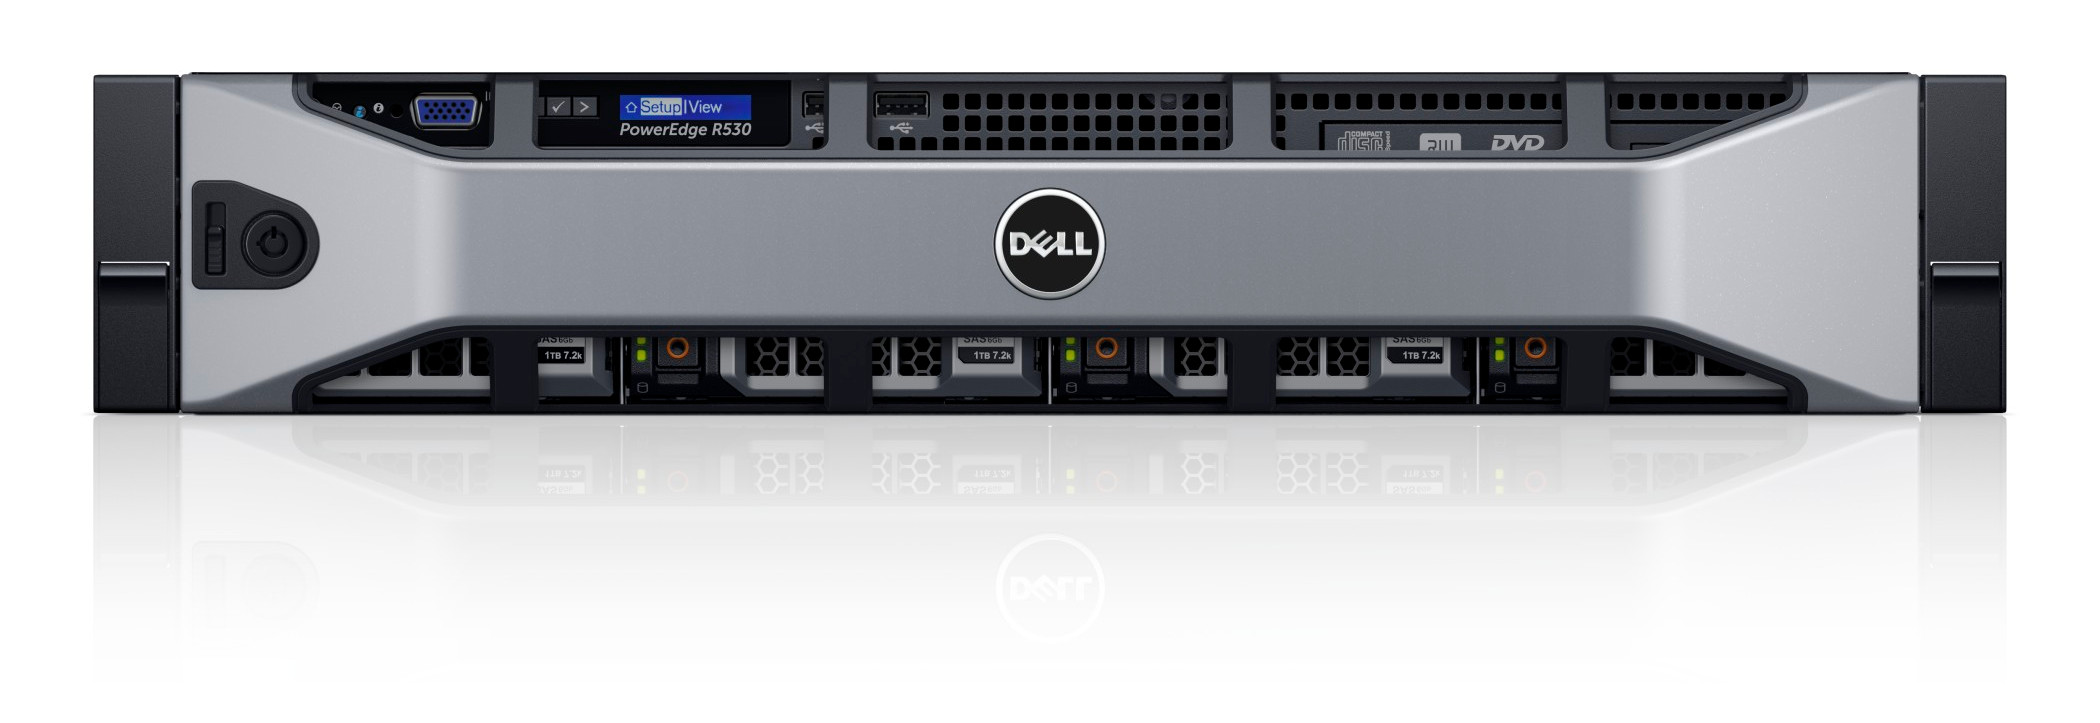 MÁY CHỦ DELL POWEREDGE R530 E5-2609V4 (8C, 20M Cache, 1.70 GHz)